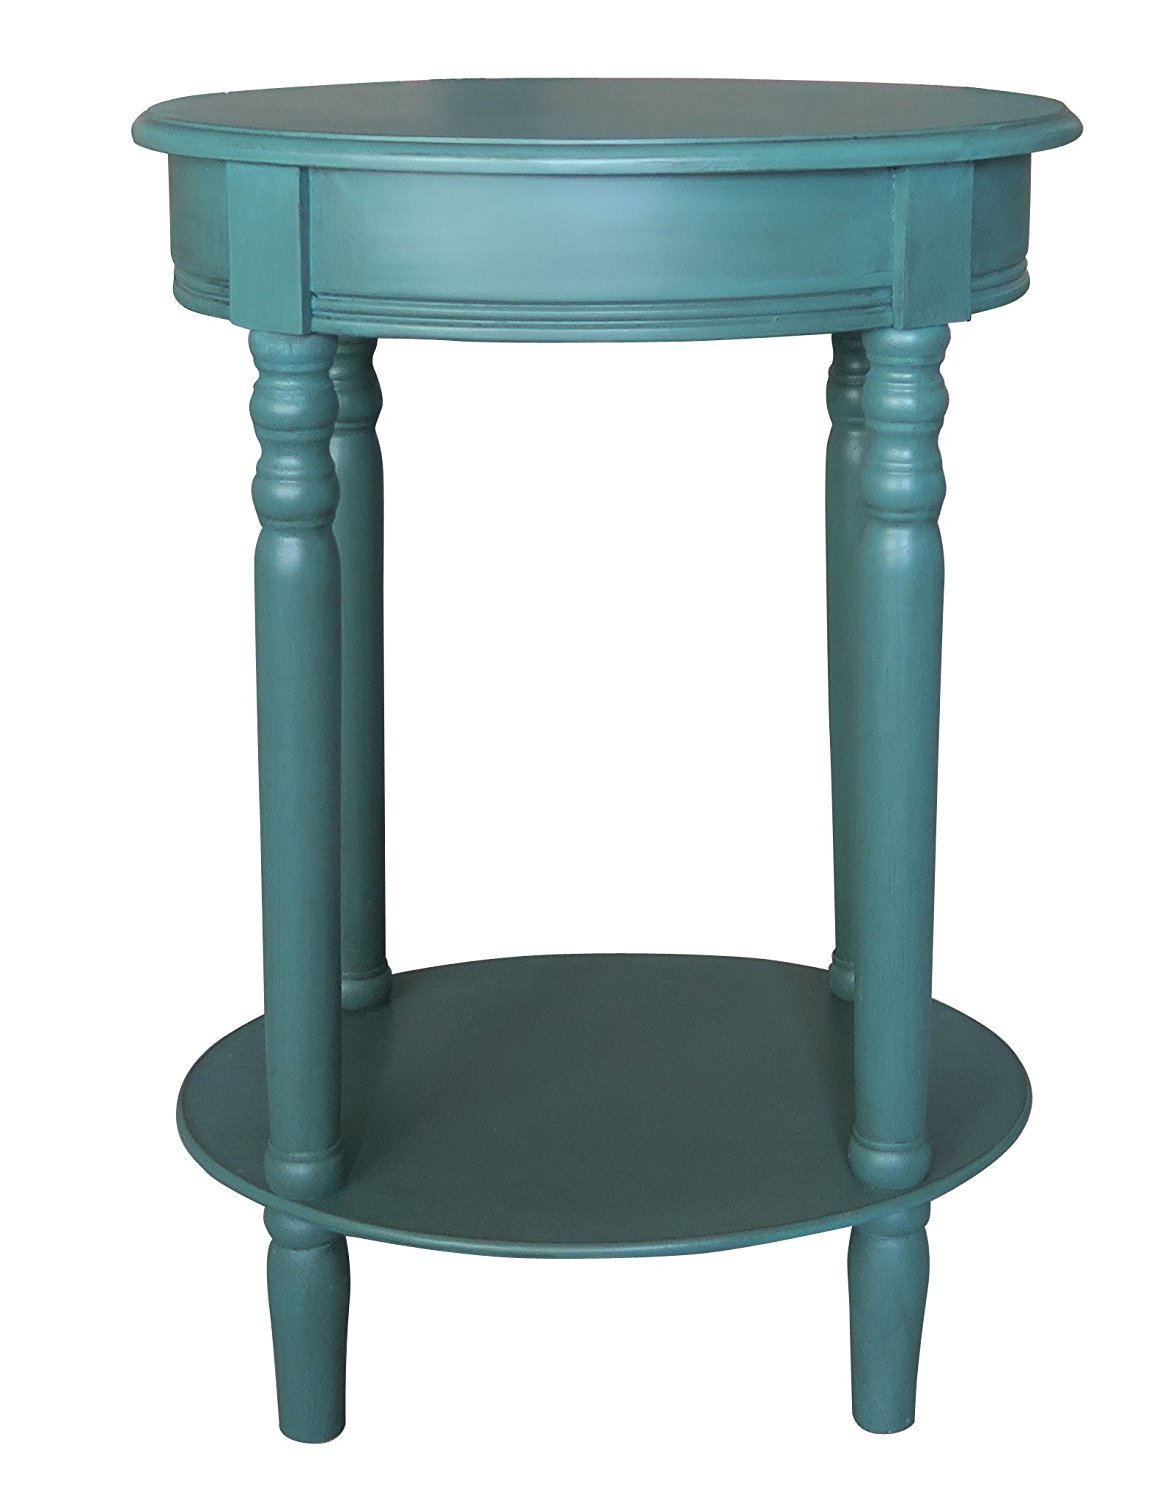 woodbury oval accent table with drawer finishes urbanest teal pub dining set red lamp ikea black cube storage garden drinks cooler distressed white coffee ashley furniture round